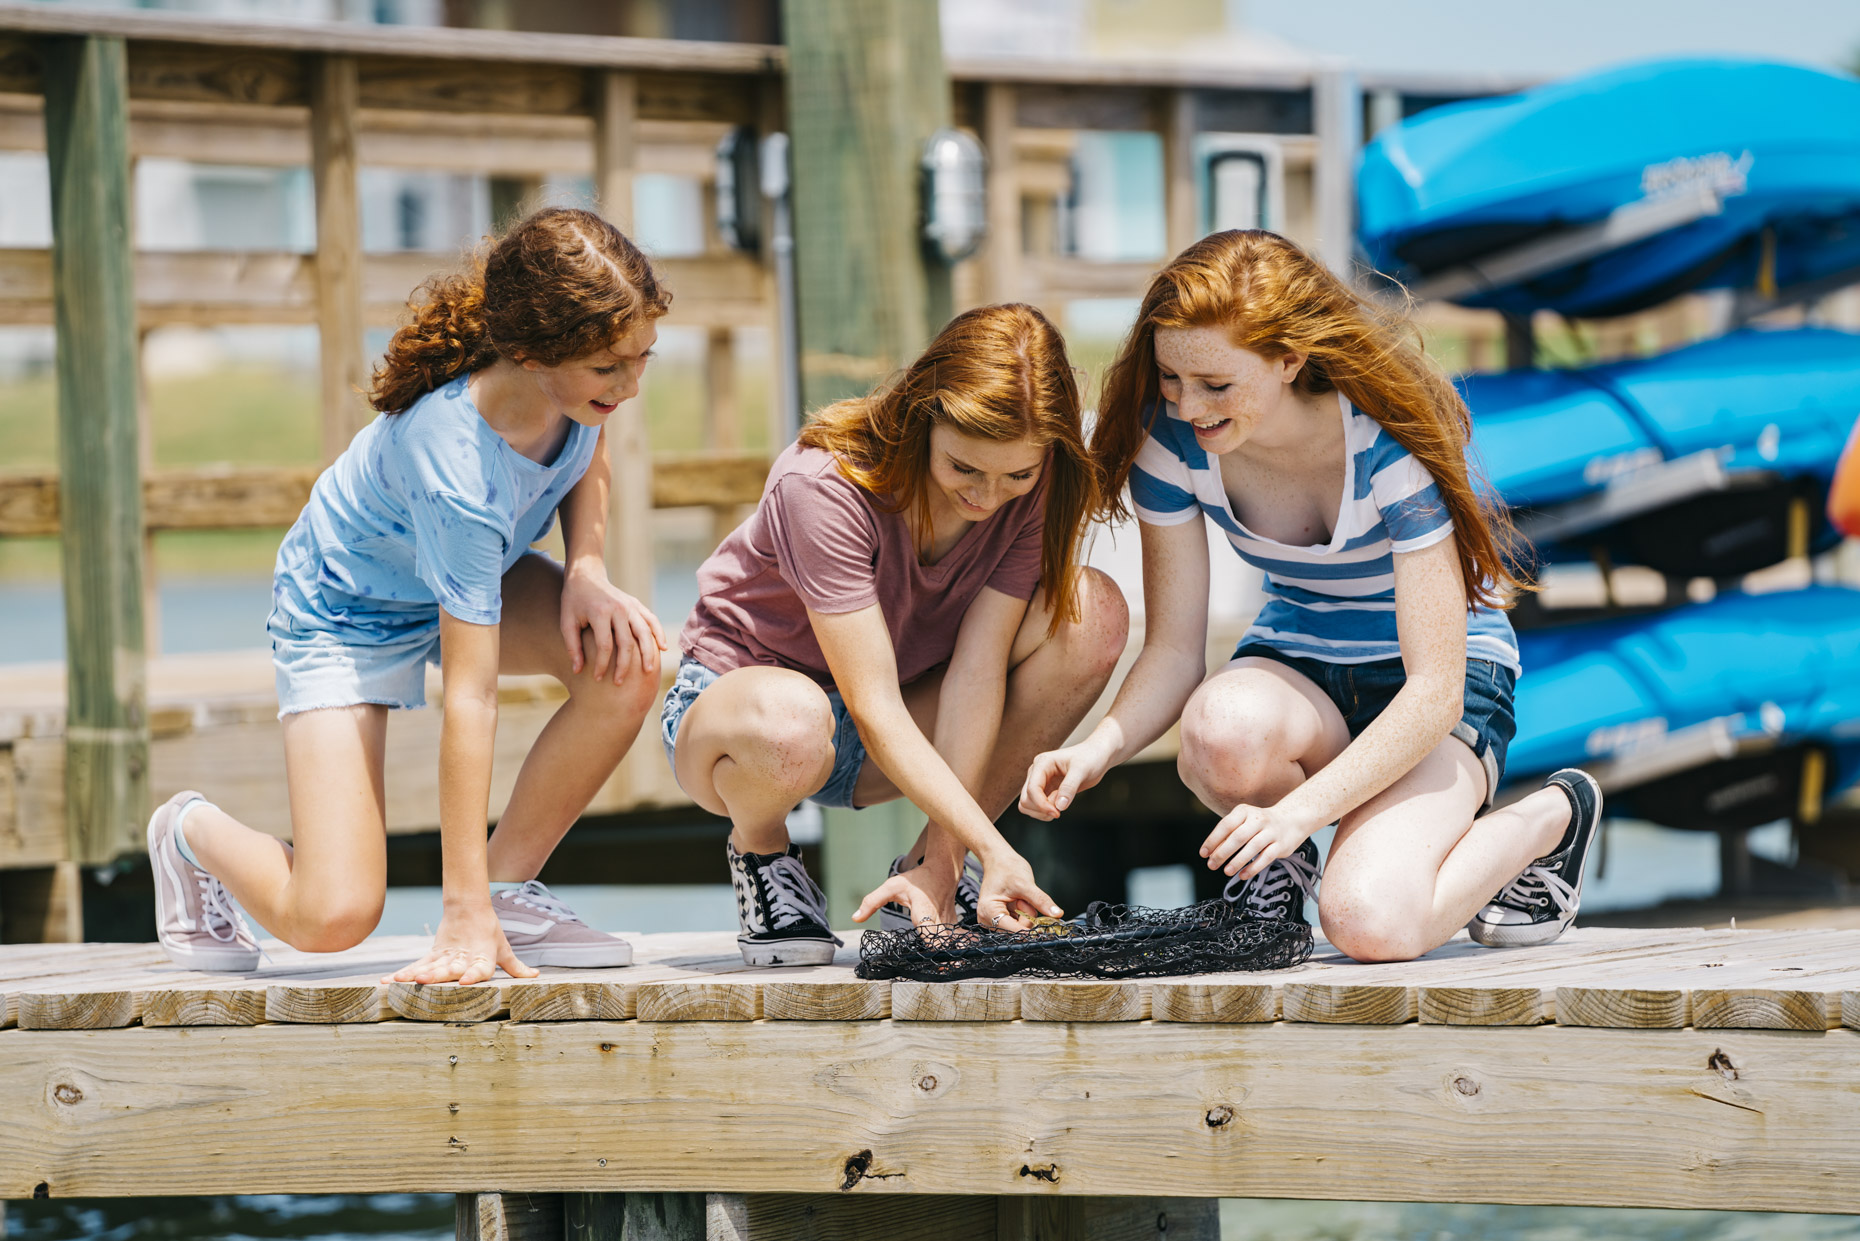 Teen girls on dock looking at freshly caught fish in net